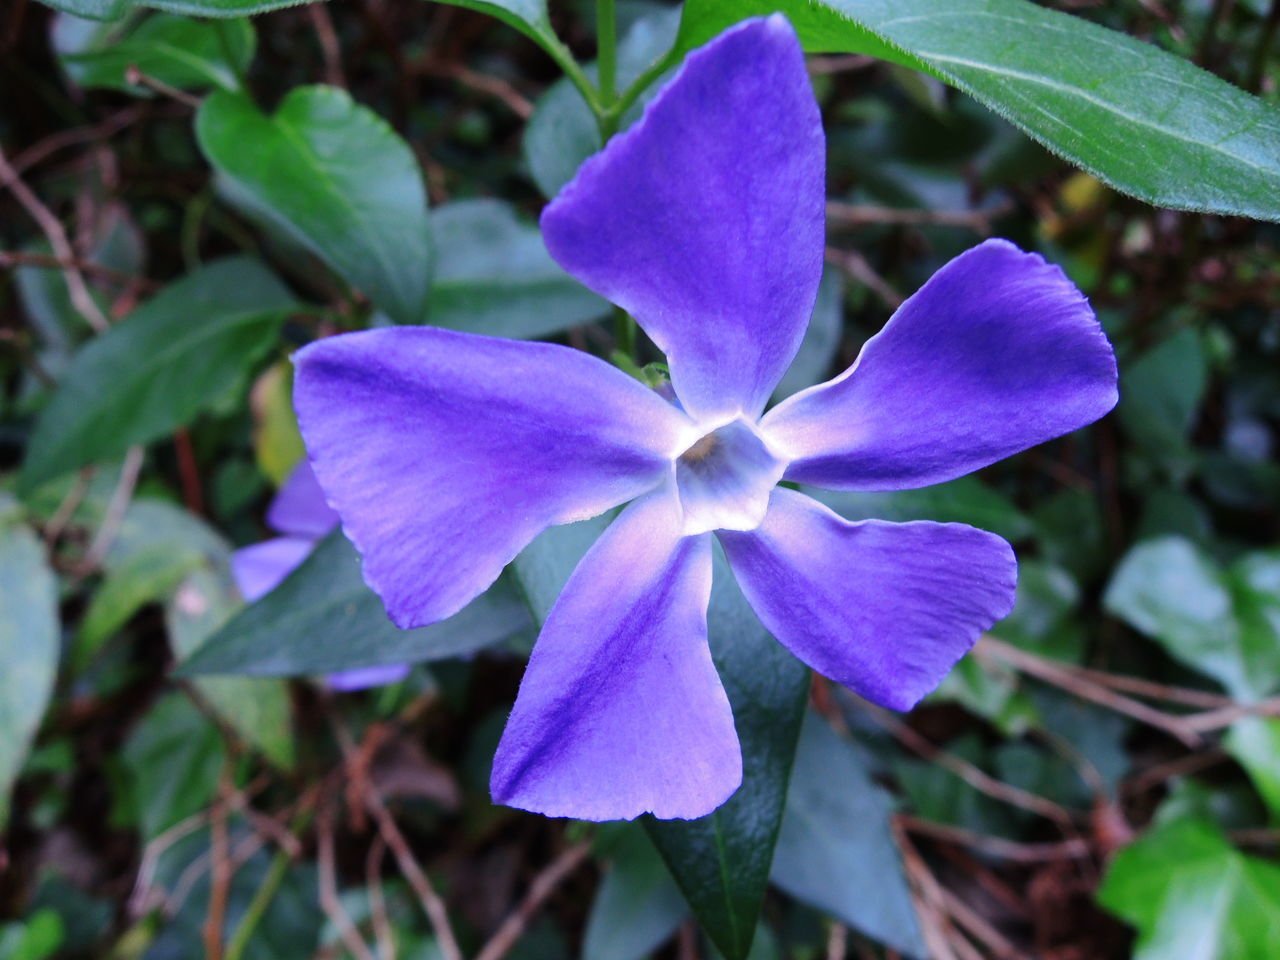 flower, petal, beauty in nature, fragility, nature, growth, purple, freshness, plant, flower head, outdoors, leaf, no people, day, close-up, blooming, periwinkle